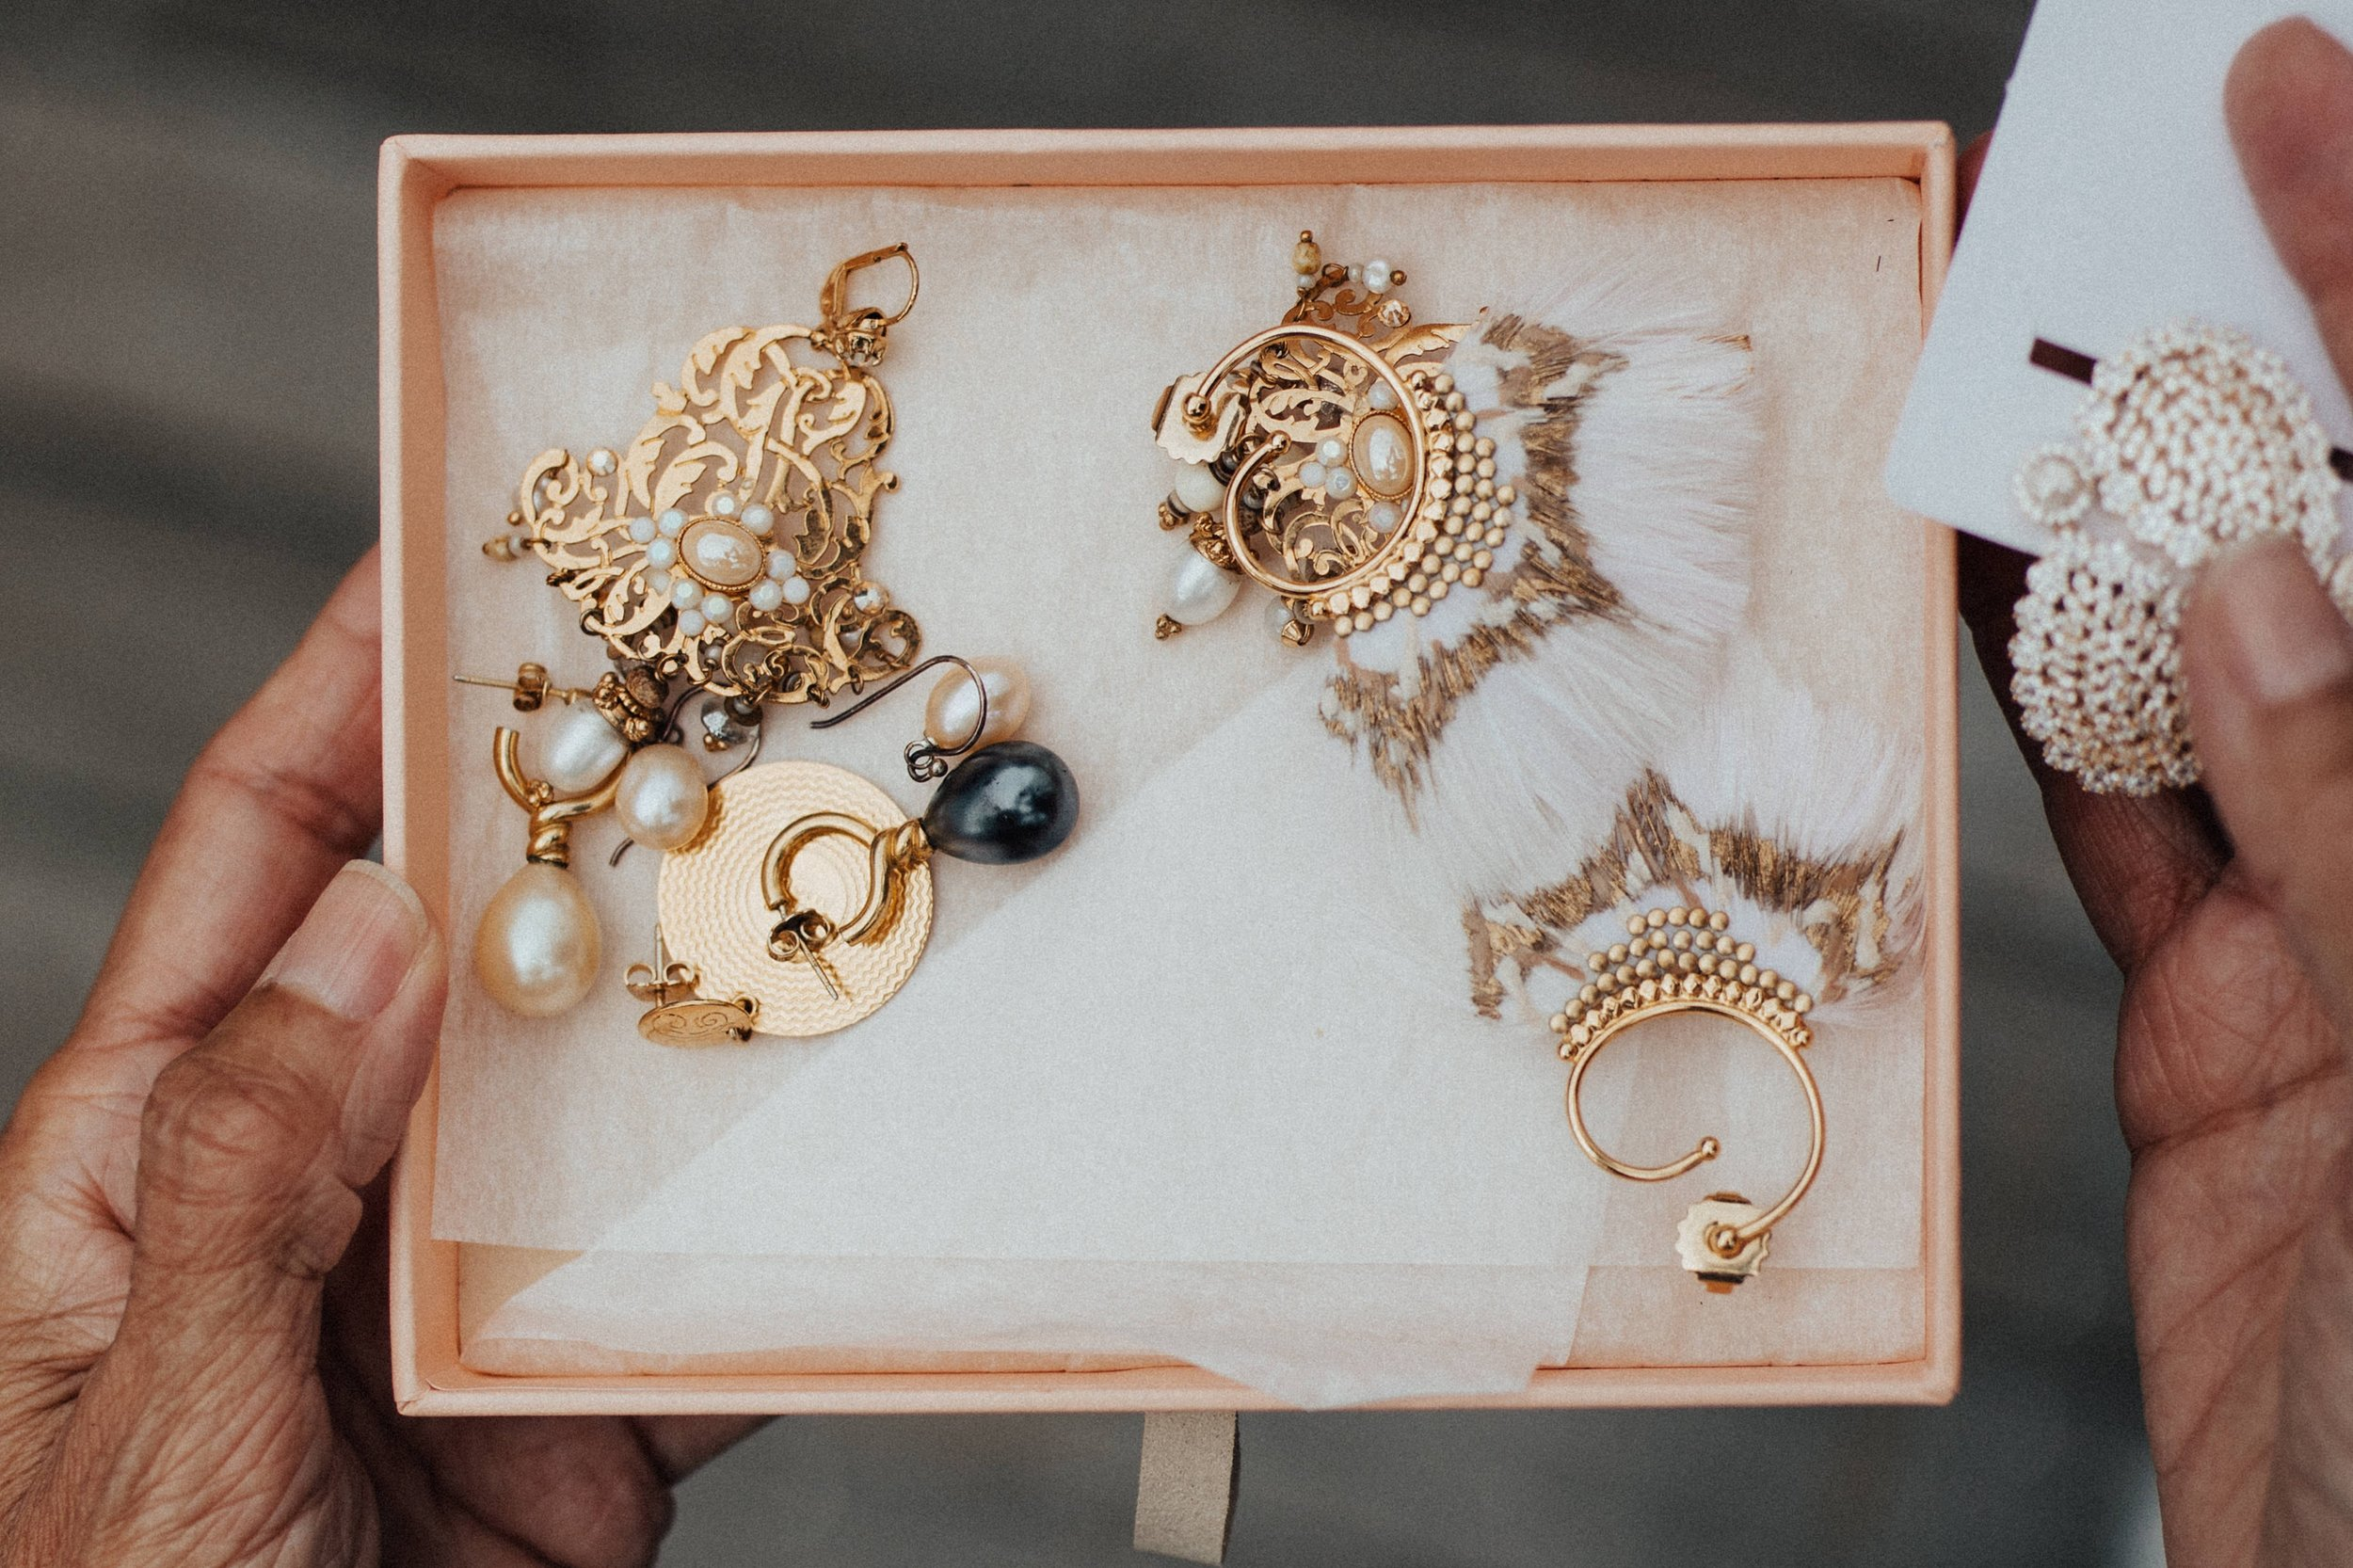 Statement Jewelry Rules For Doing It Right Guest Post Unsplash Royalty Free Images Esther Santer NYC Street Style Fashion Blogger.jpg